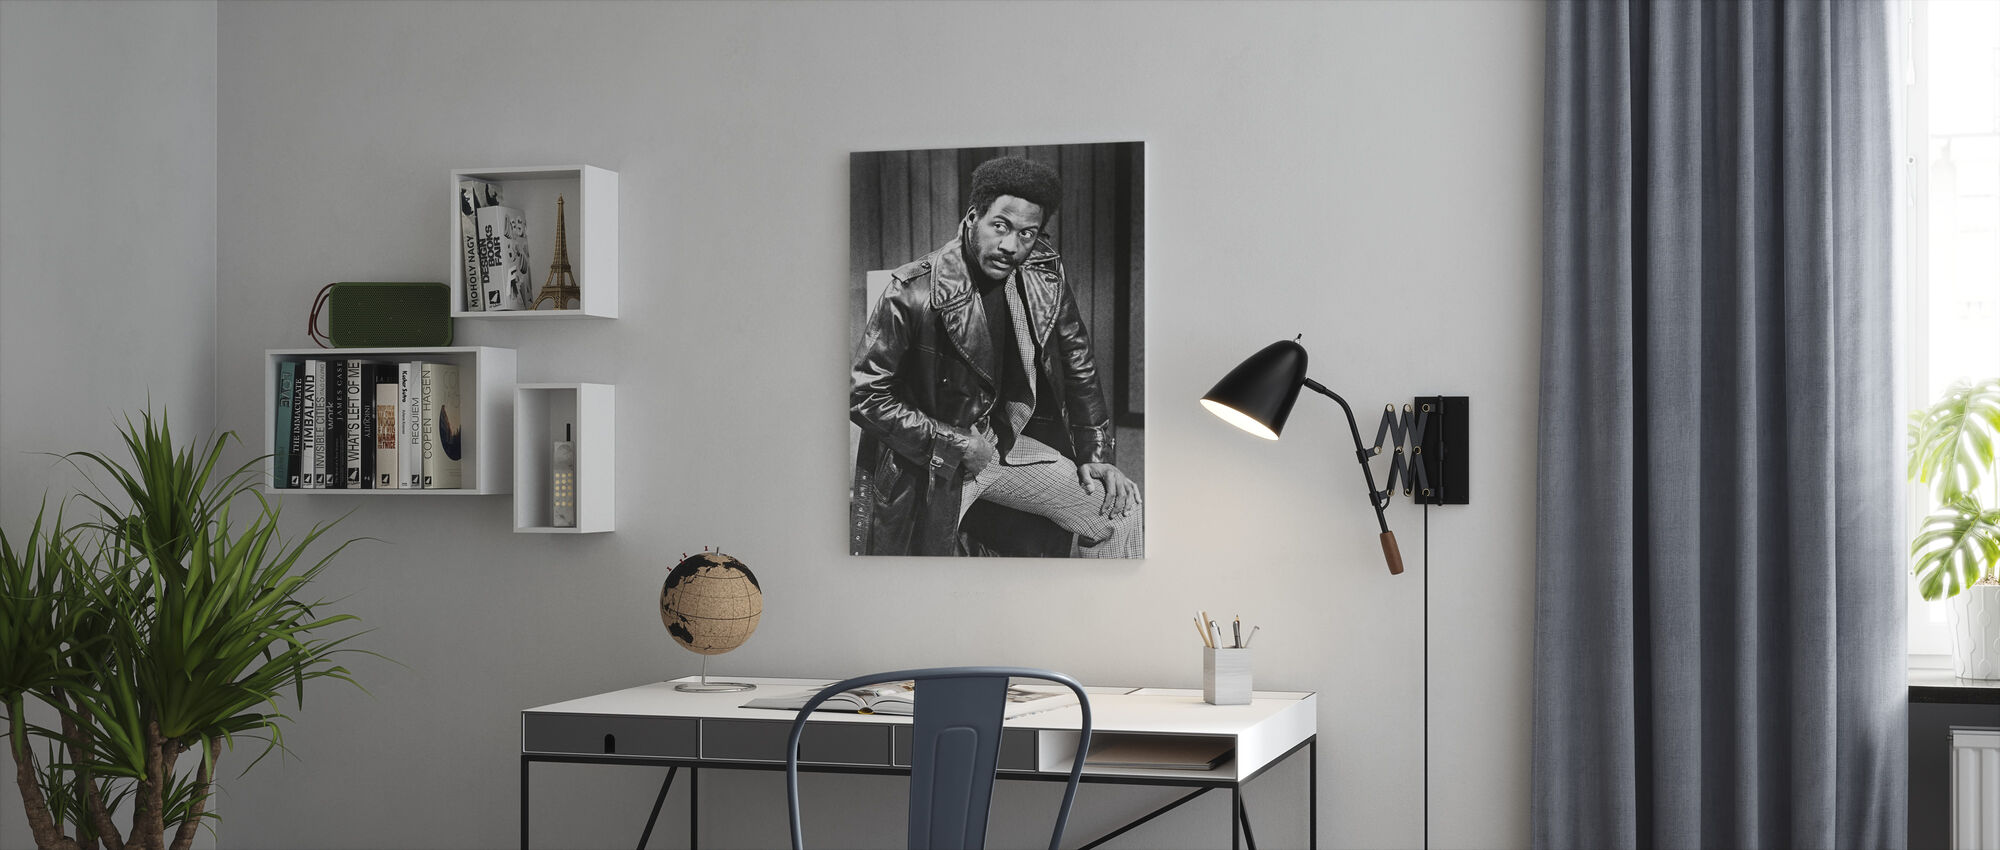 Shafts Big Score - Richard Roundtree - Canvas print - Office